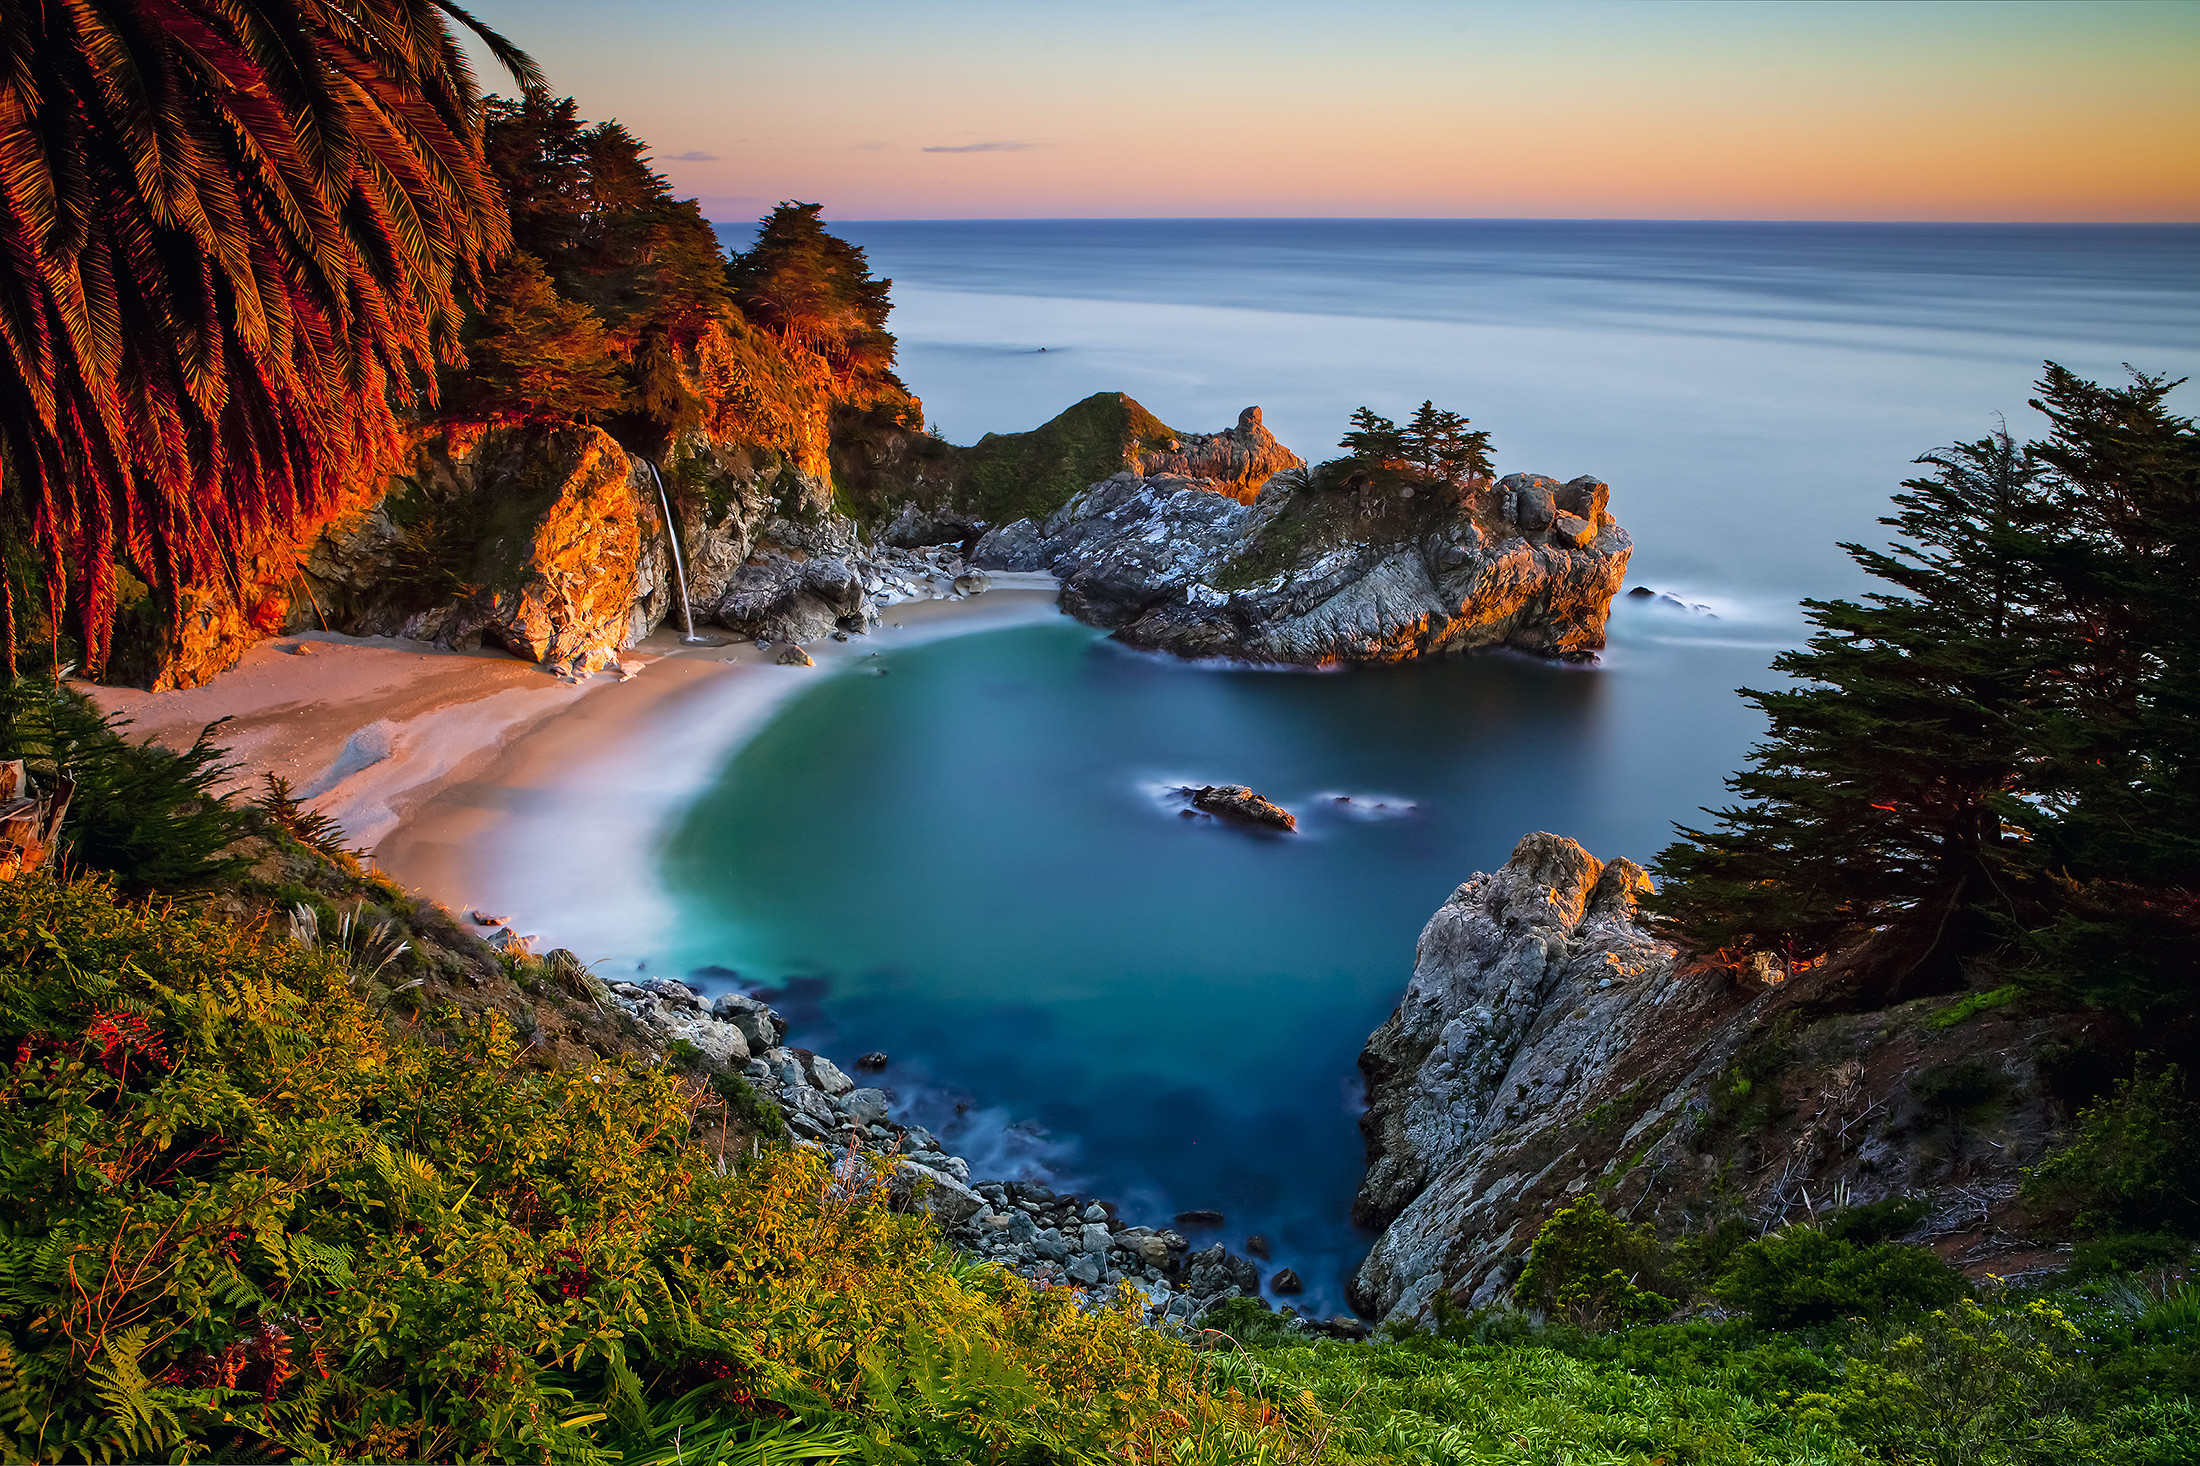 обои Julia Pfeiffer Burns State Park, Big Sur, Monterey County, California картинки фото